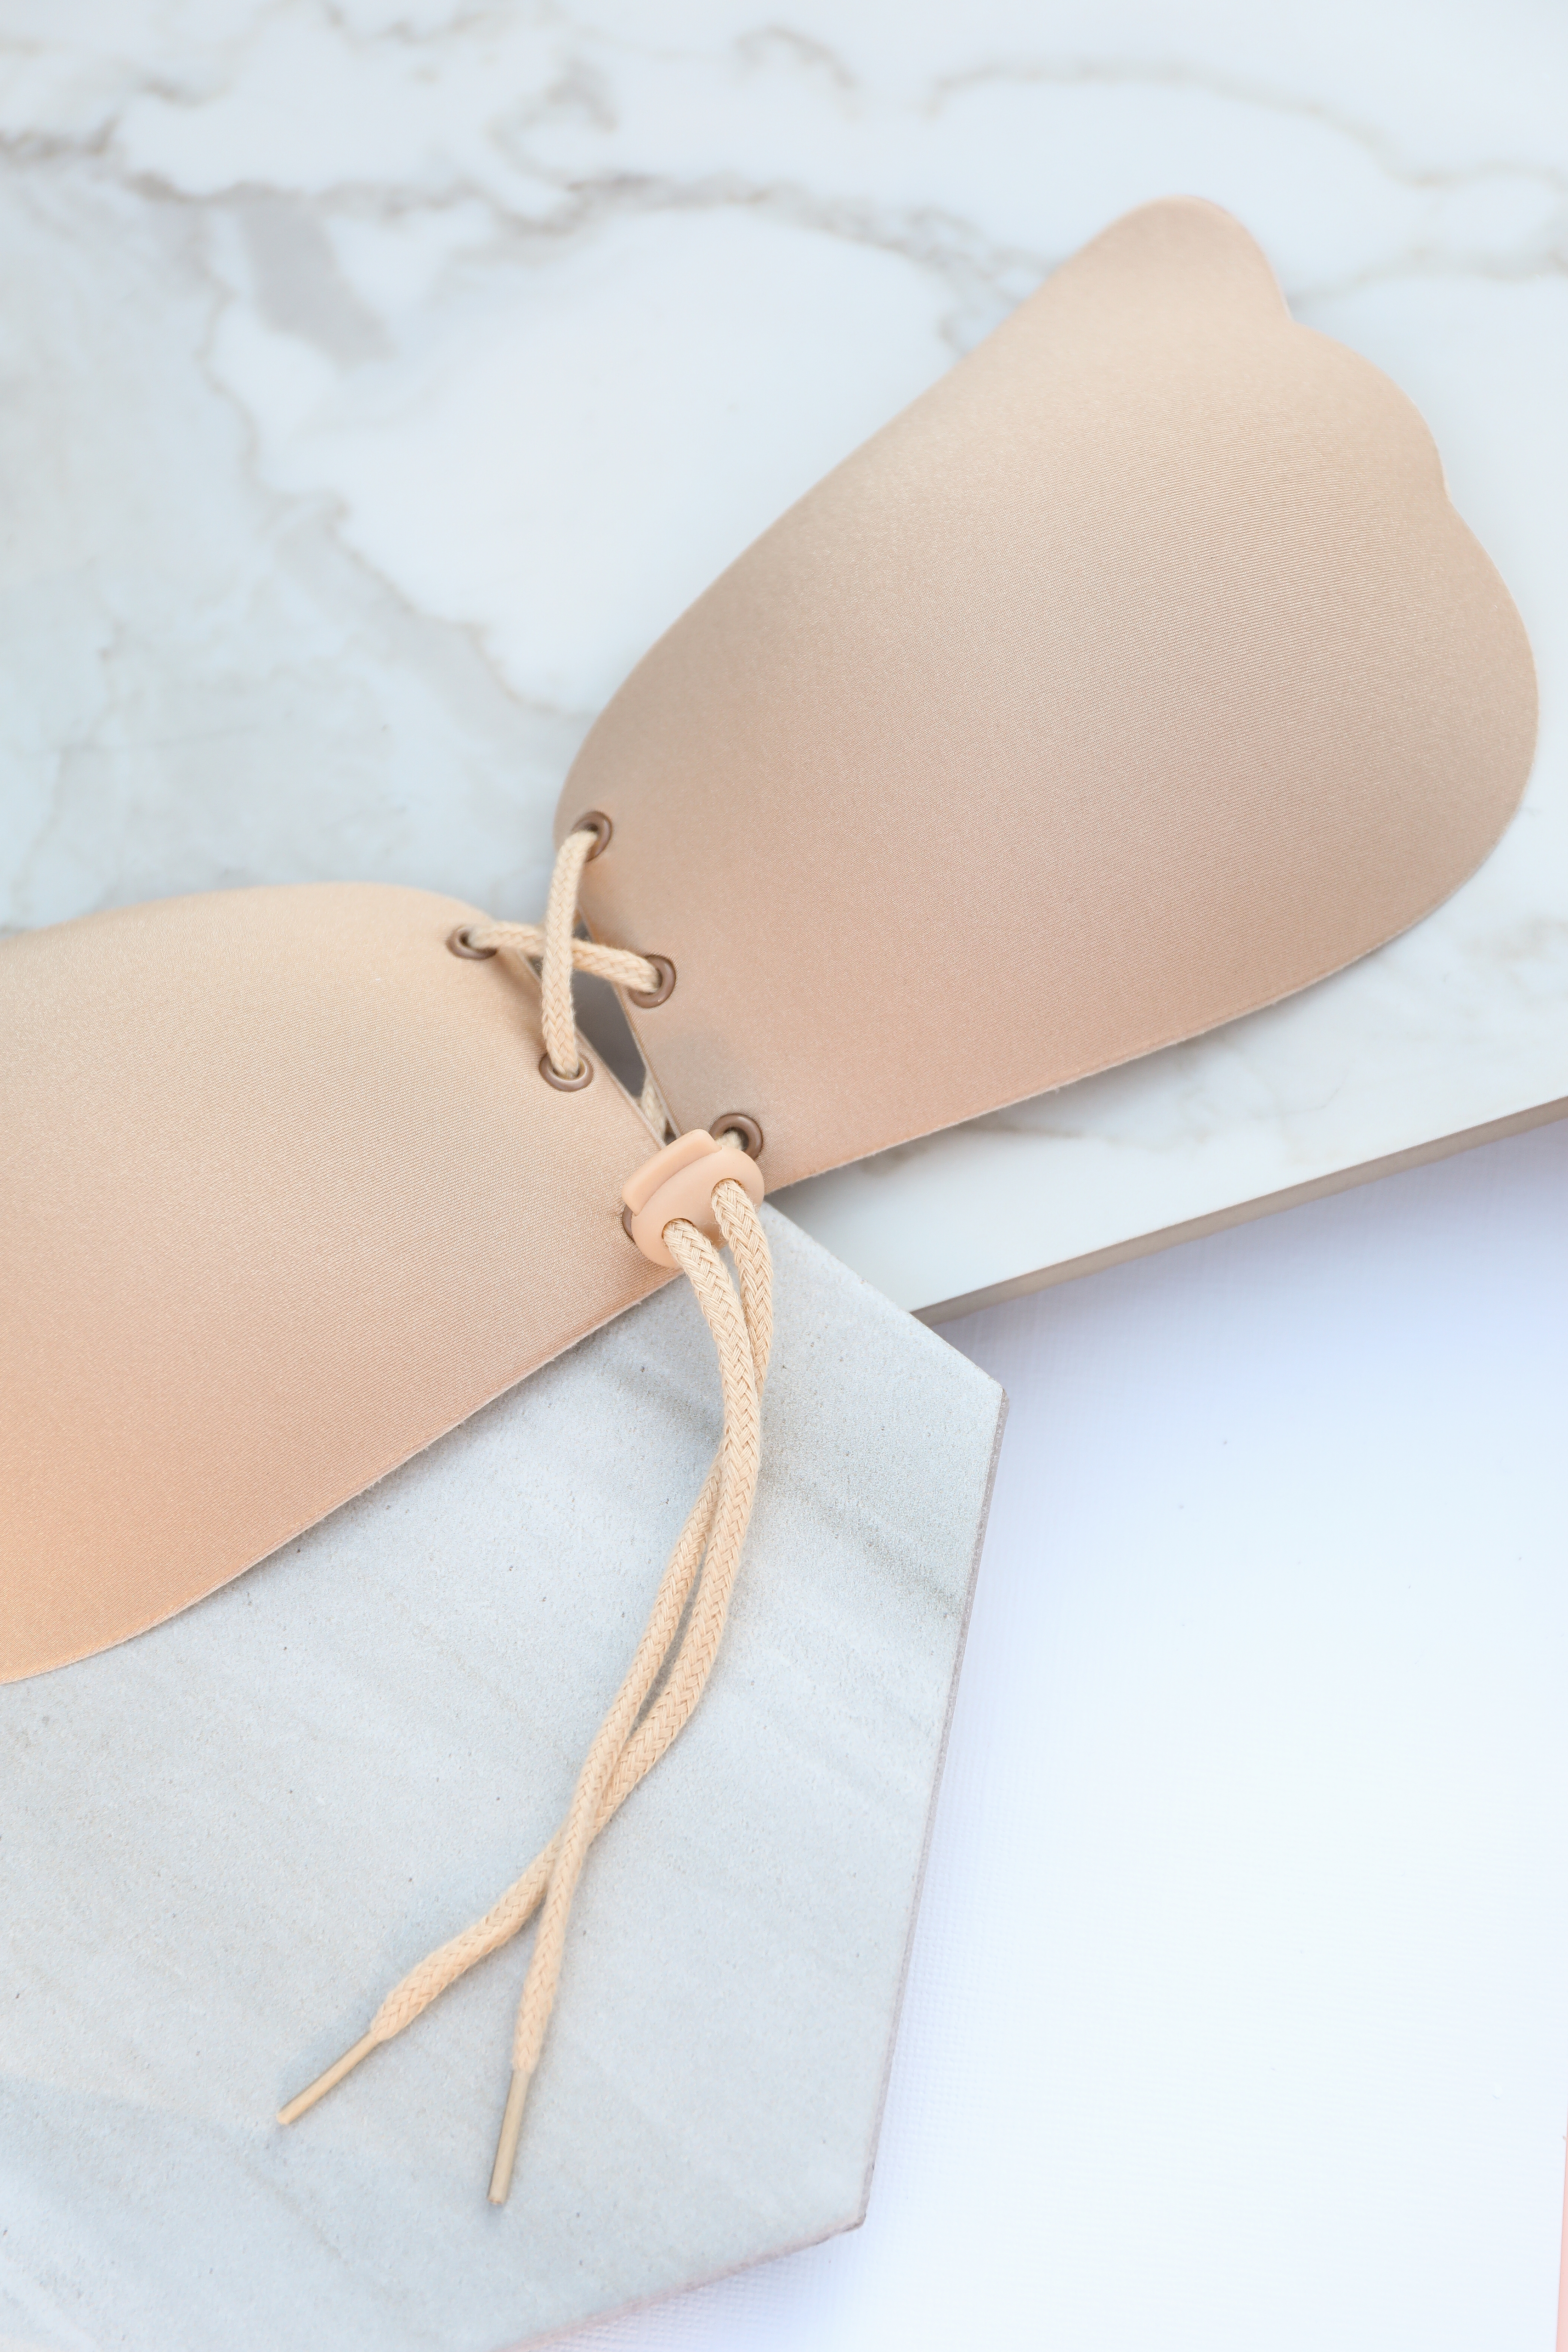 Beige Strapless Lace Up Adhesive Bra